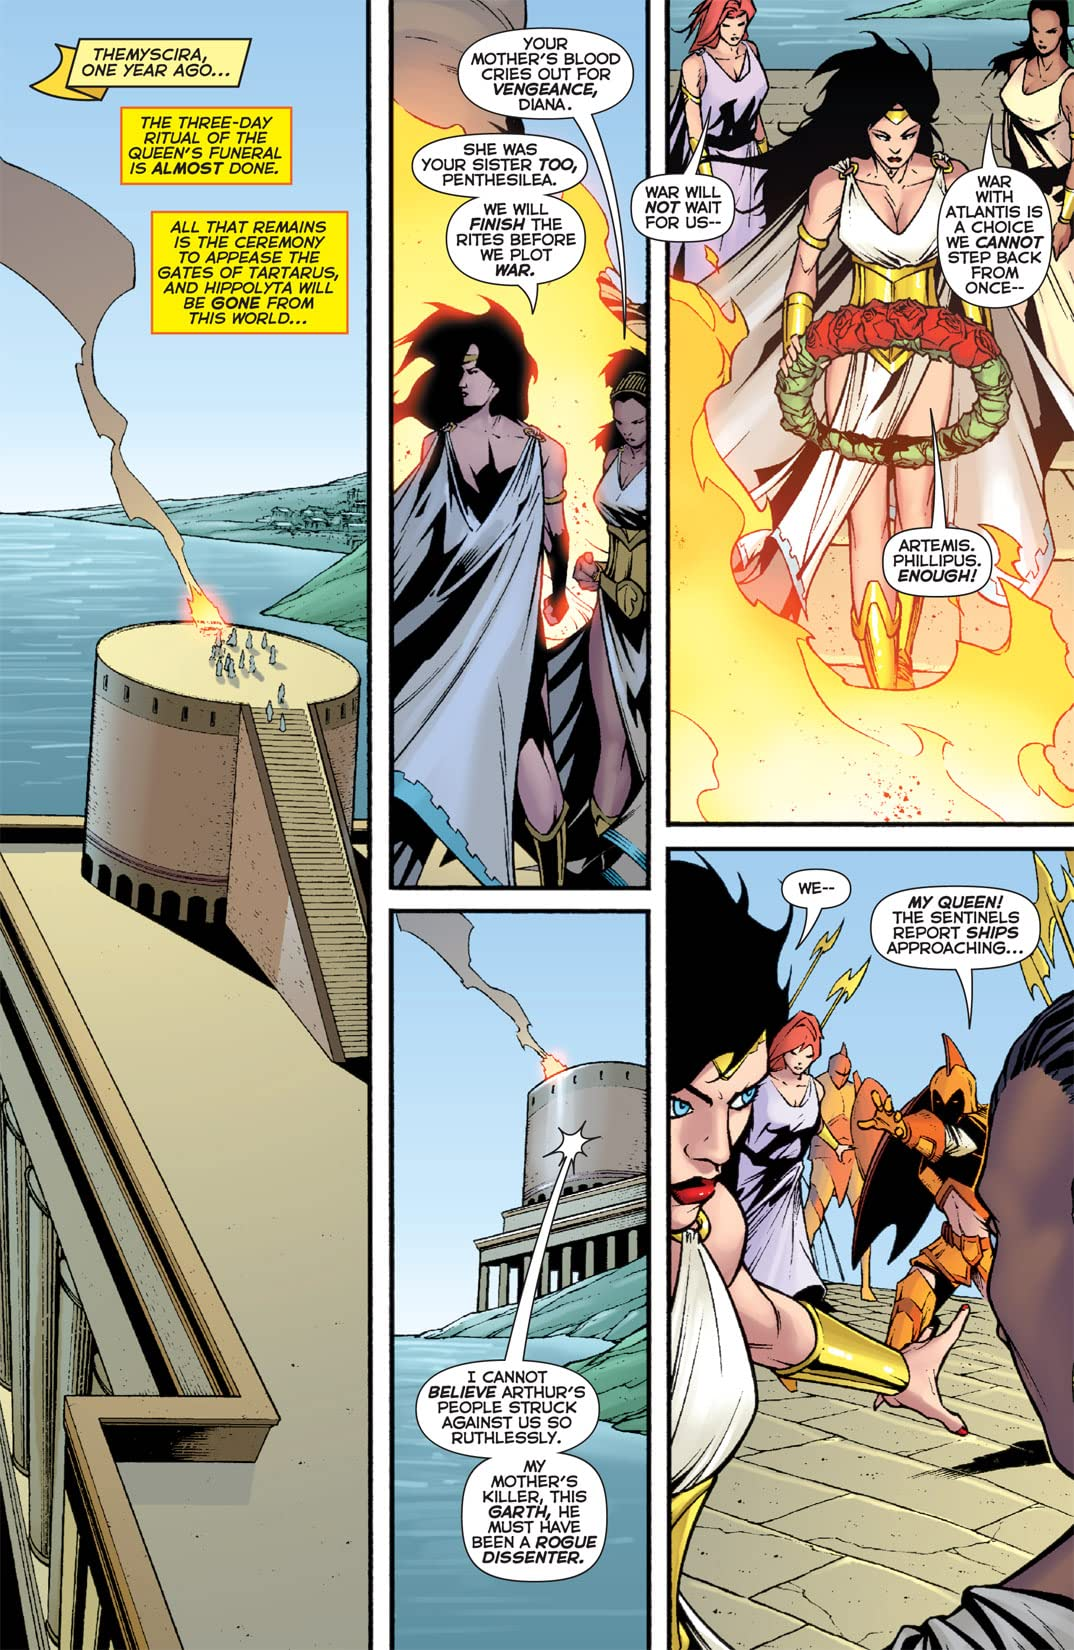 Flashpoint: Wonder Woman and the Furies #2 (of 3)